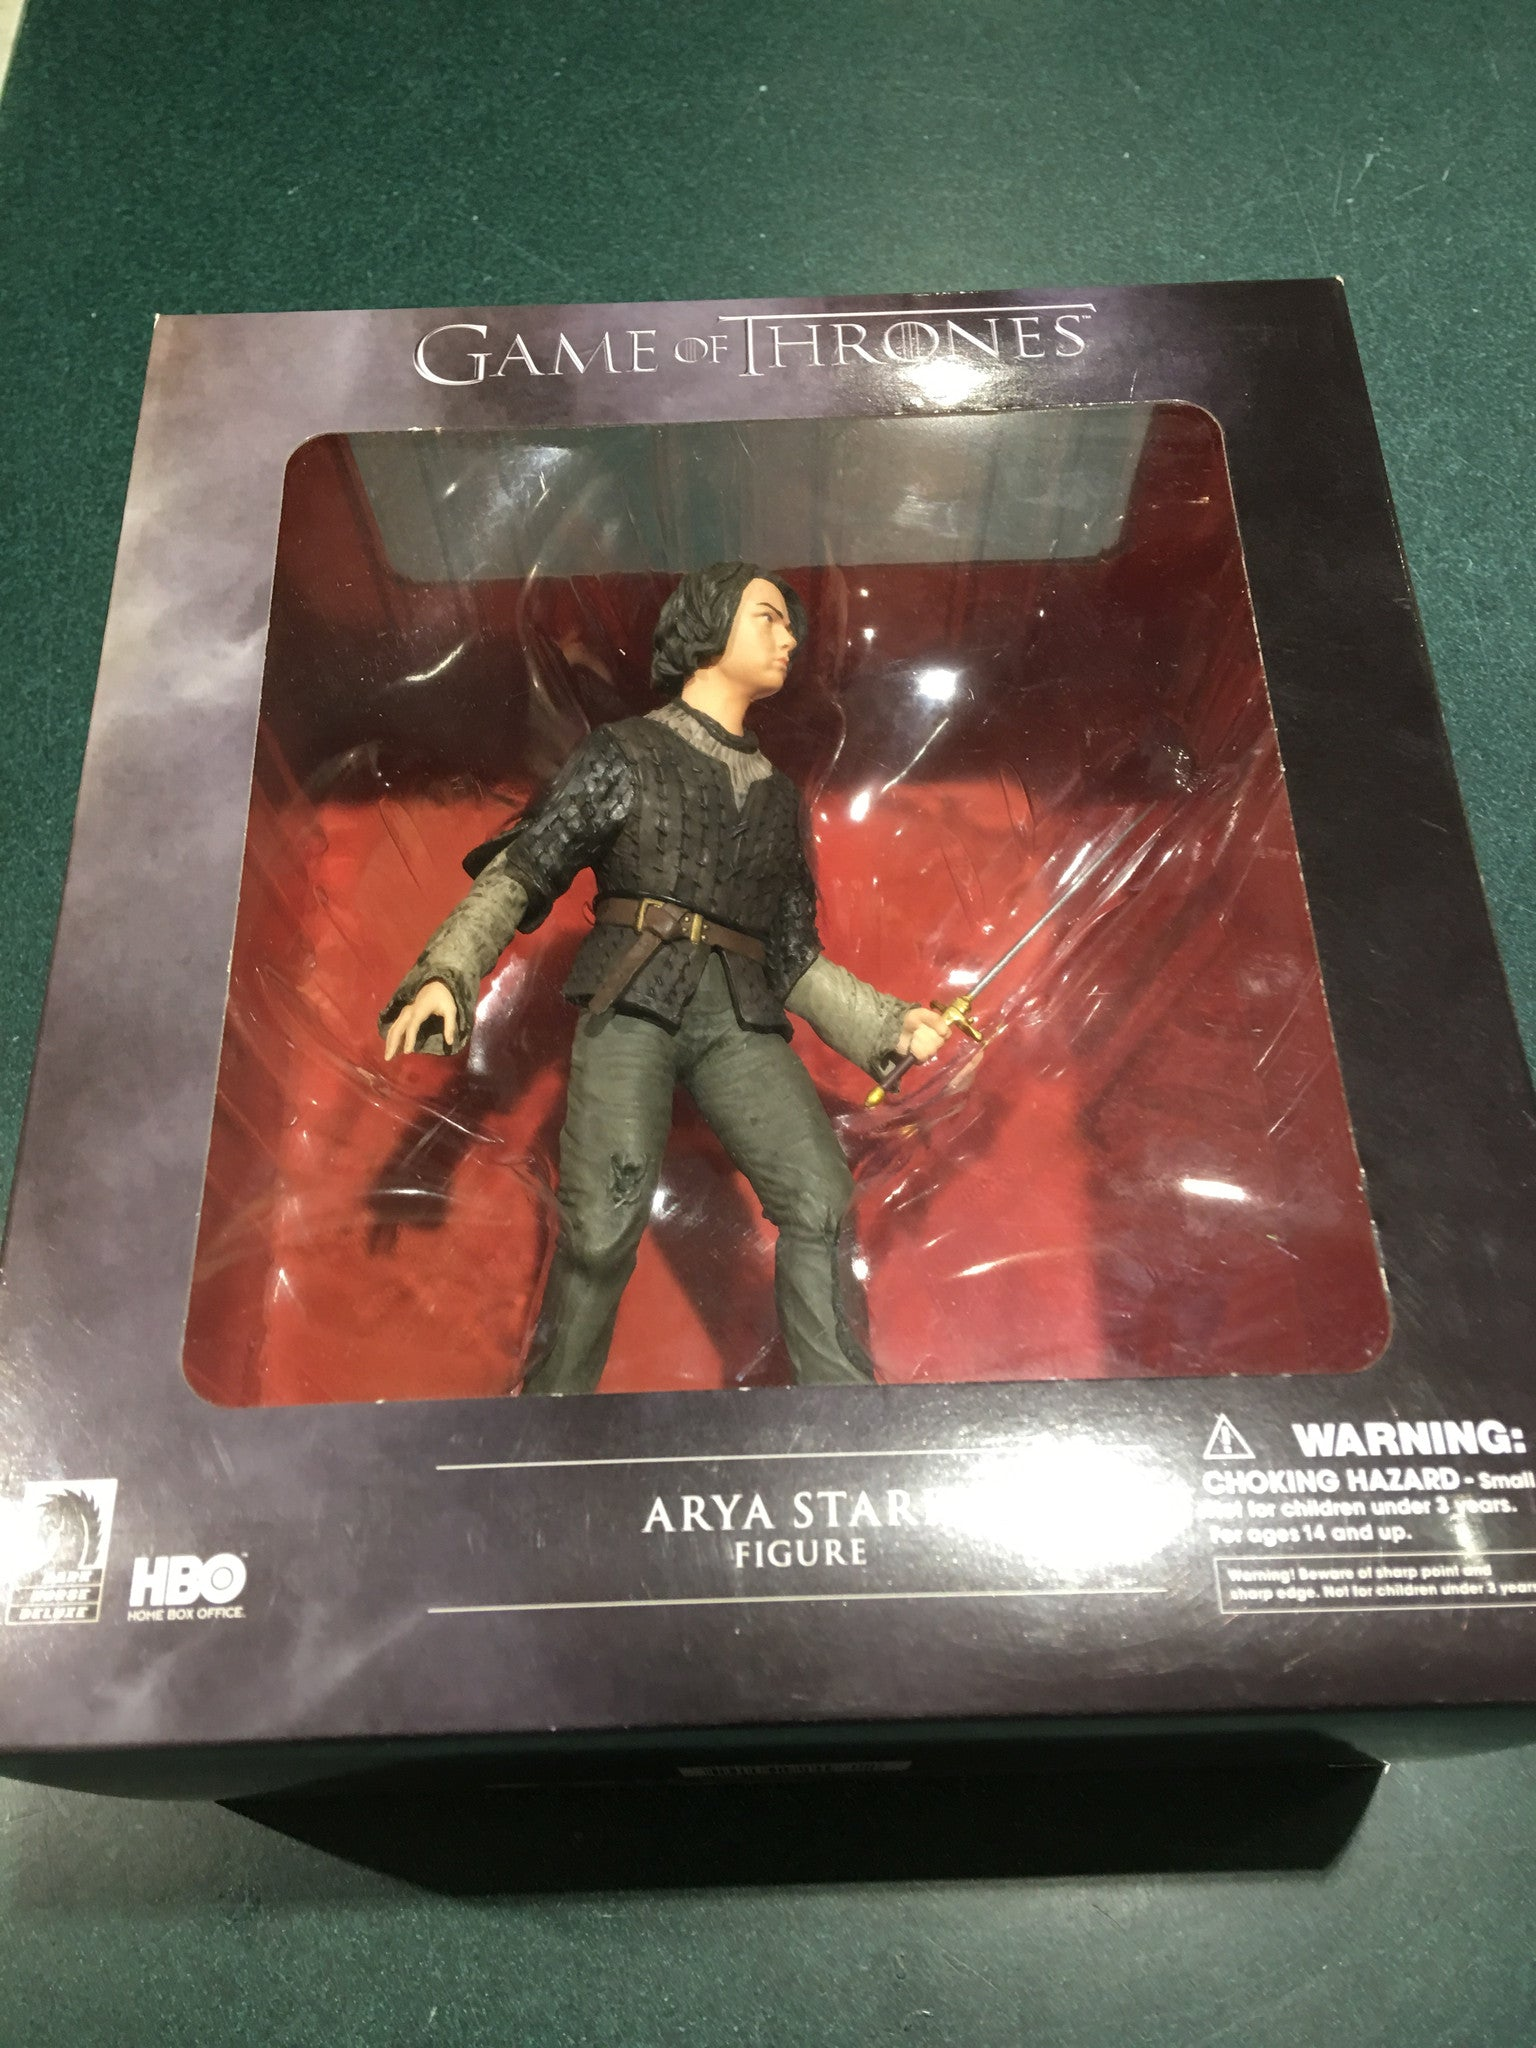 HBO's Game of Thrones: Arya Stark Figure